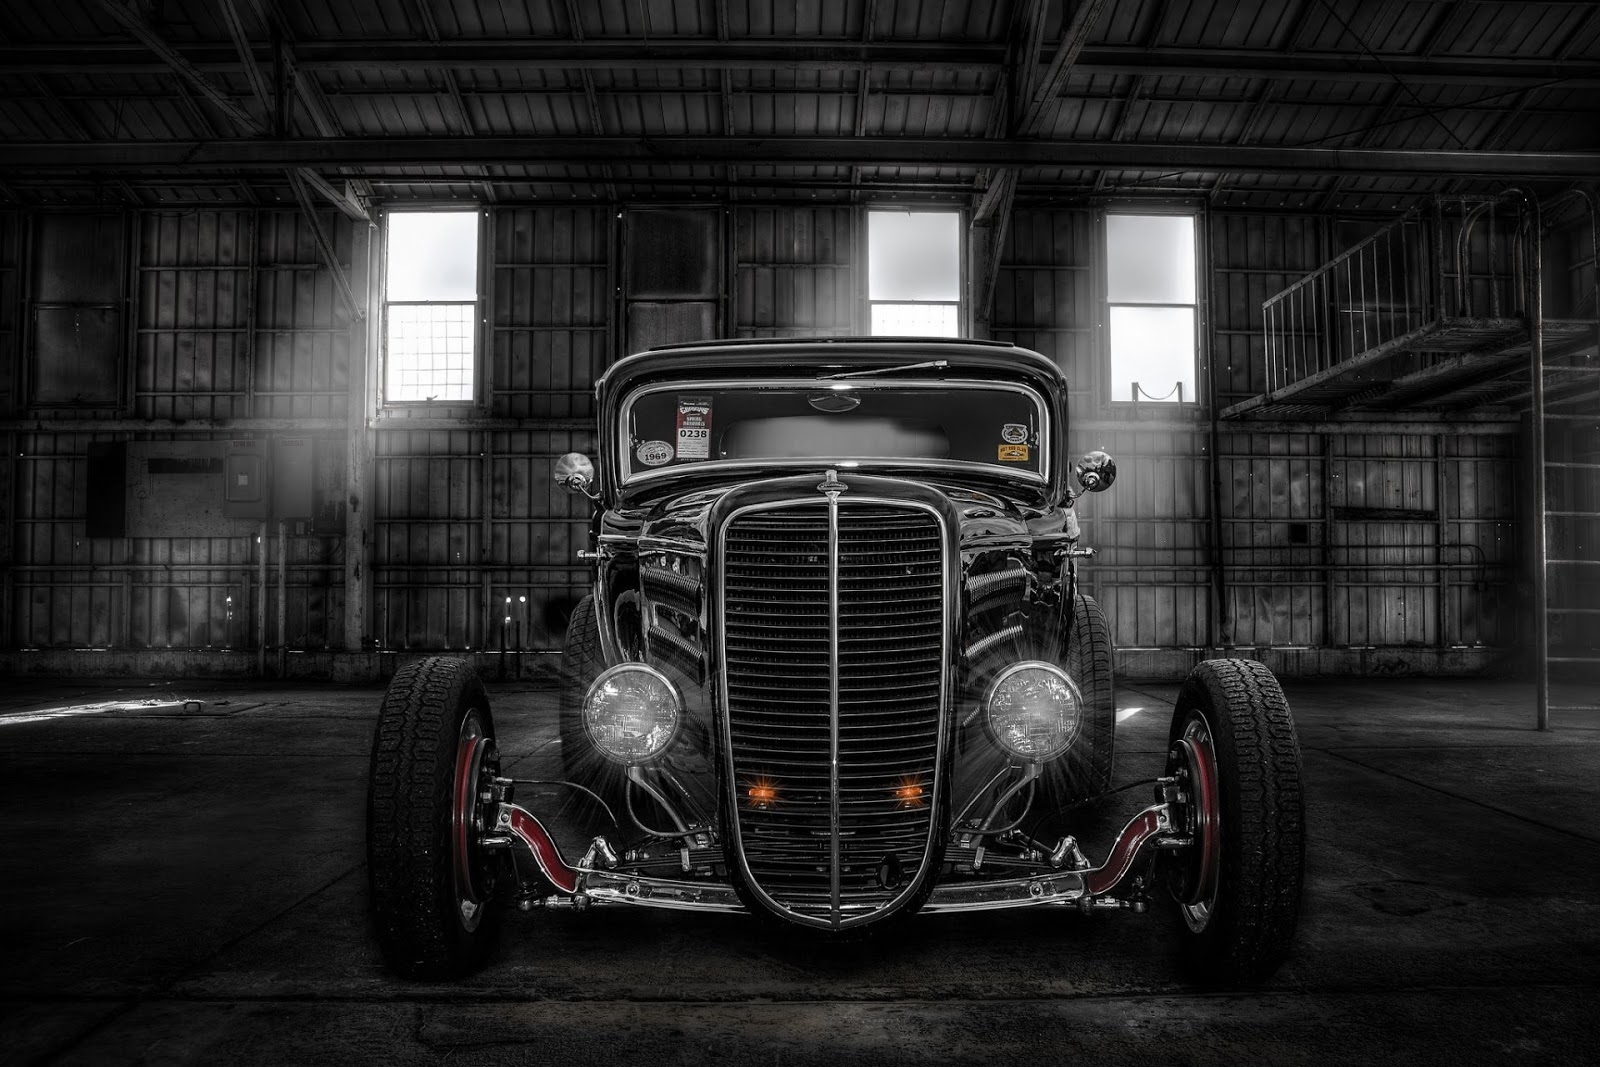 hot-rod, classic car, classic, retro, front, light, hangar